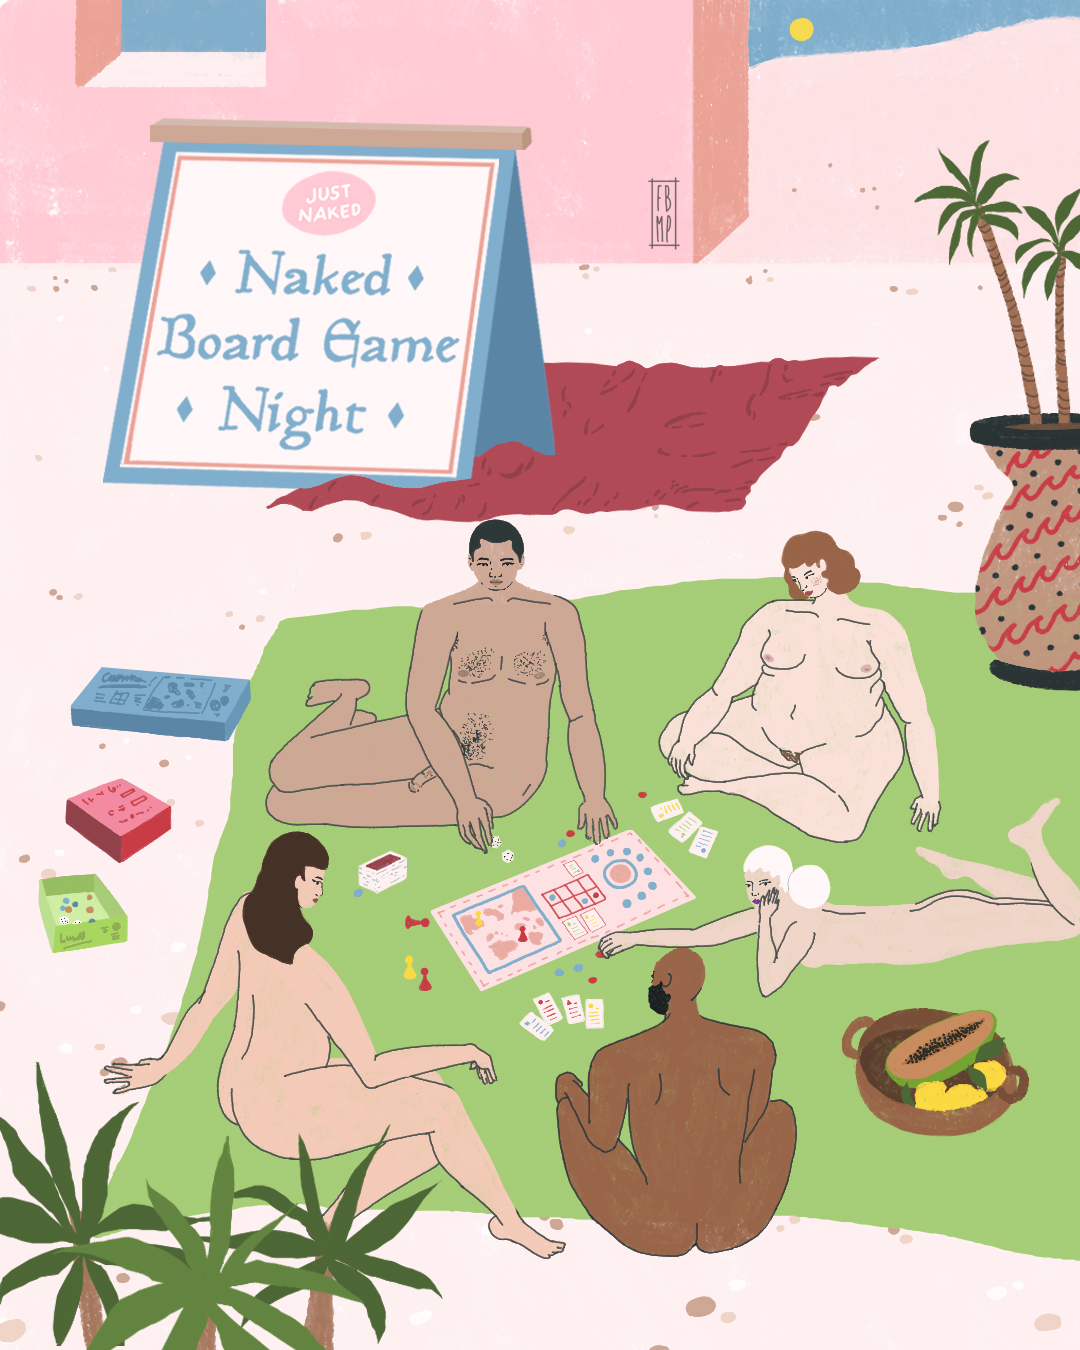 Just naked nyc board game